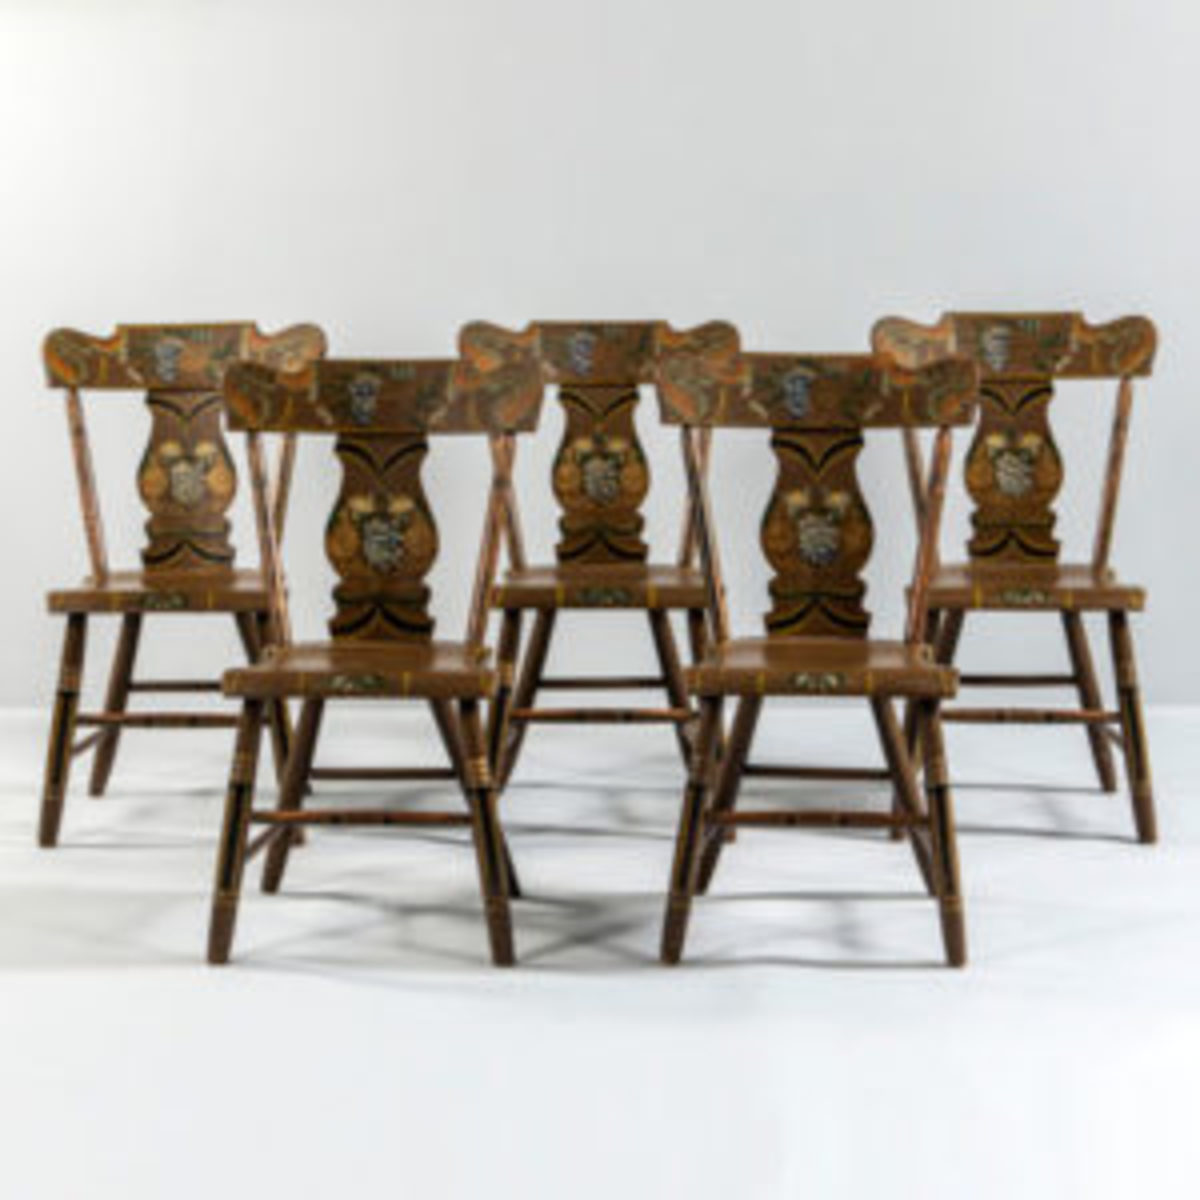 Set of five paint-decorated dining chairs, 32 3/4 x 16 3/4 in., Pennsylvania, c. 1825-35. Shaped crests above turned spindles and vasiform splats, allover light brown paint with polychrome fruits, flowers, striping and bordering. Courtesy of Skinner, Inc.